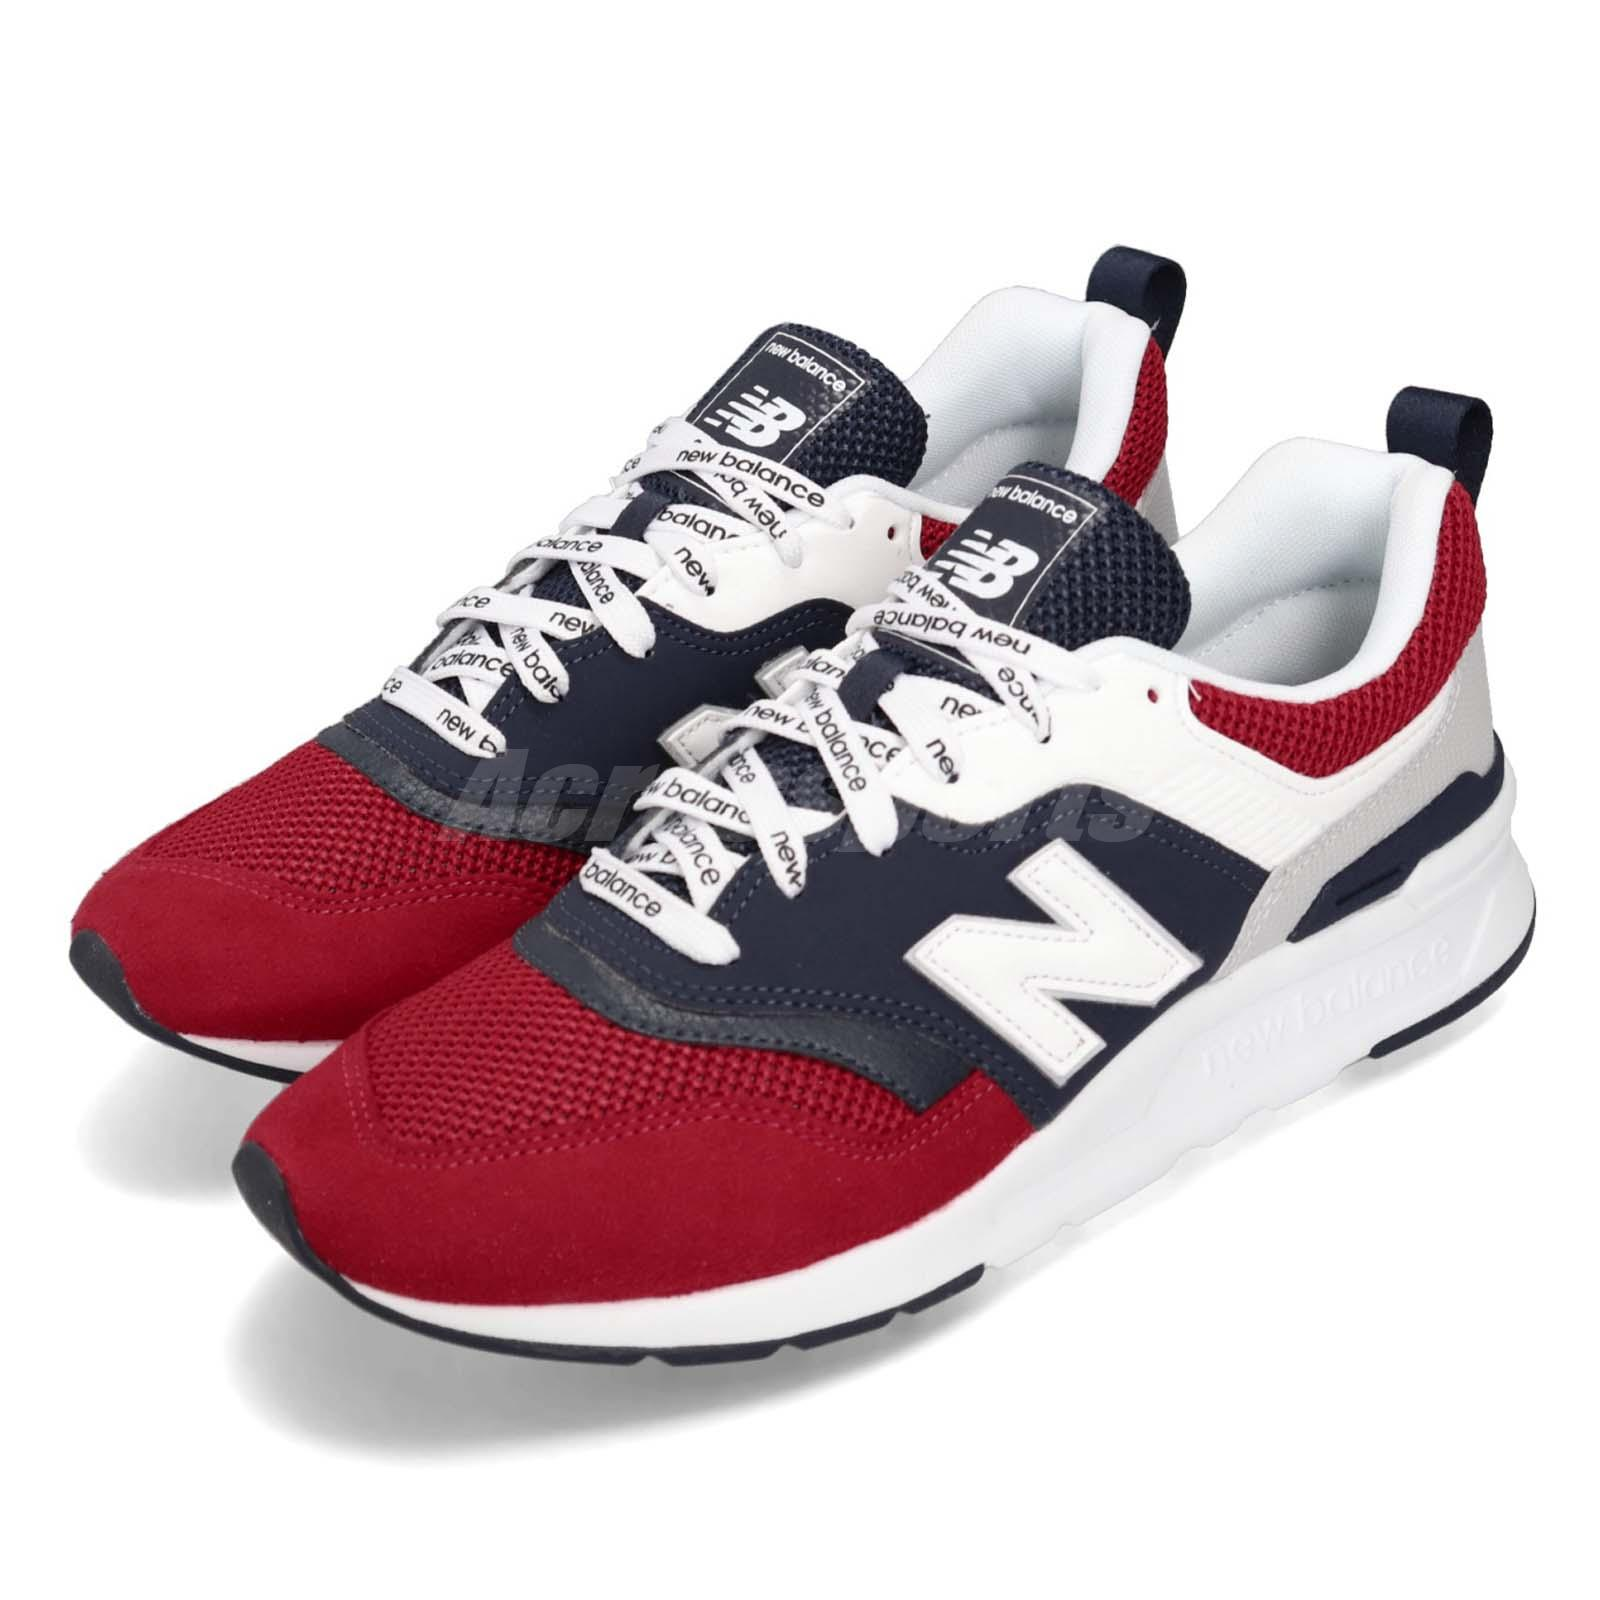 premium selection 76603 1b7f2 Details about New Balance CM997HEA D Red Navy White Men Running Casual  Shoes Sneaker CM997HEAD